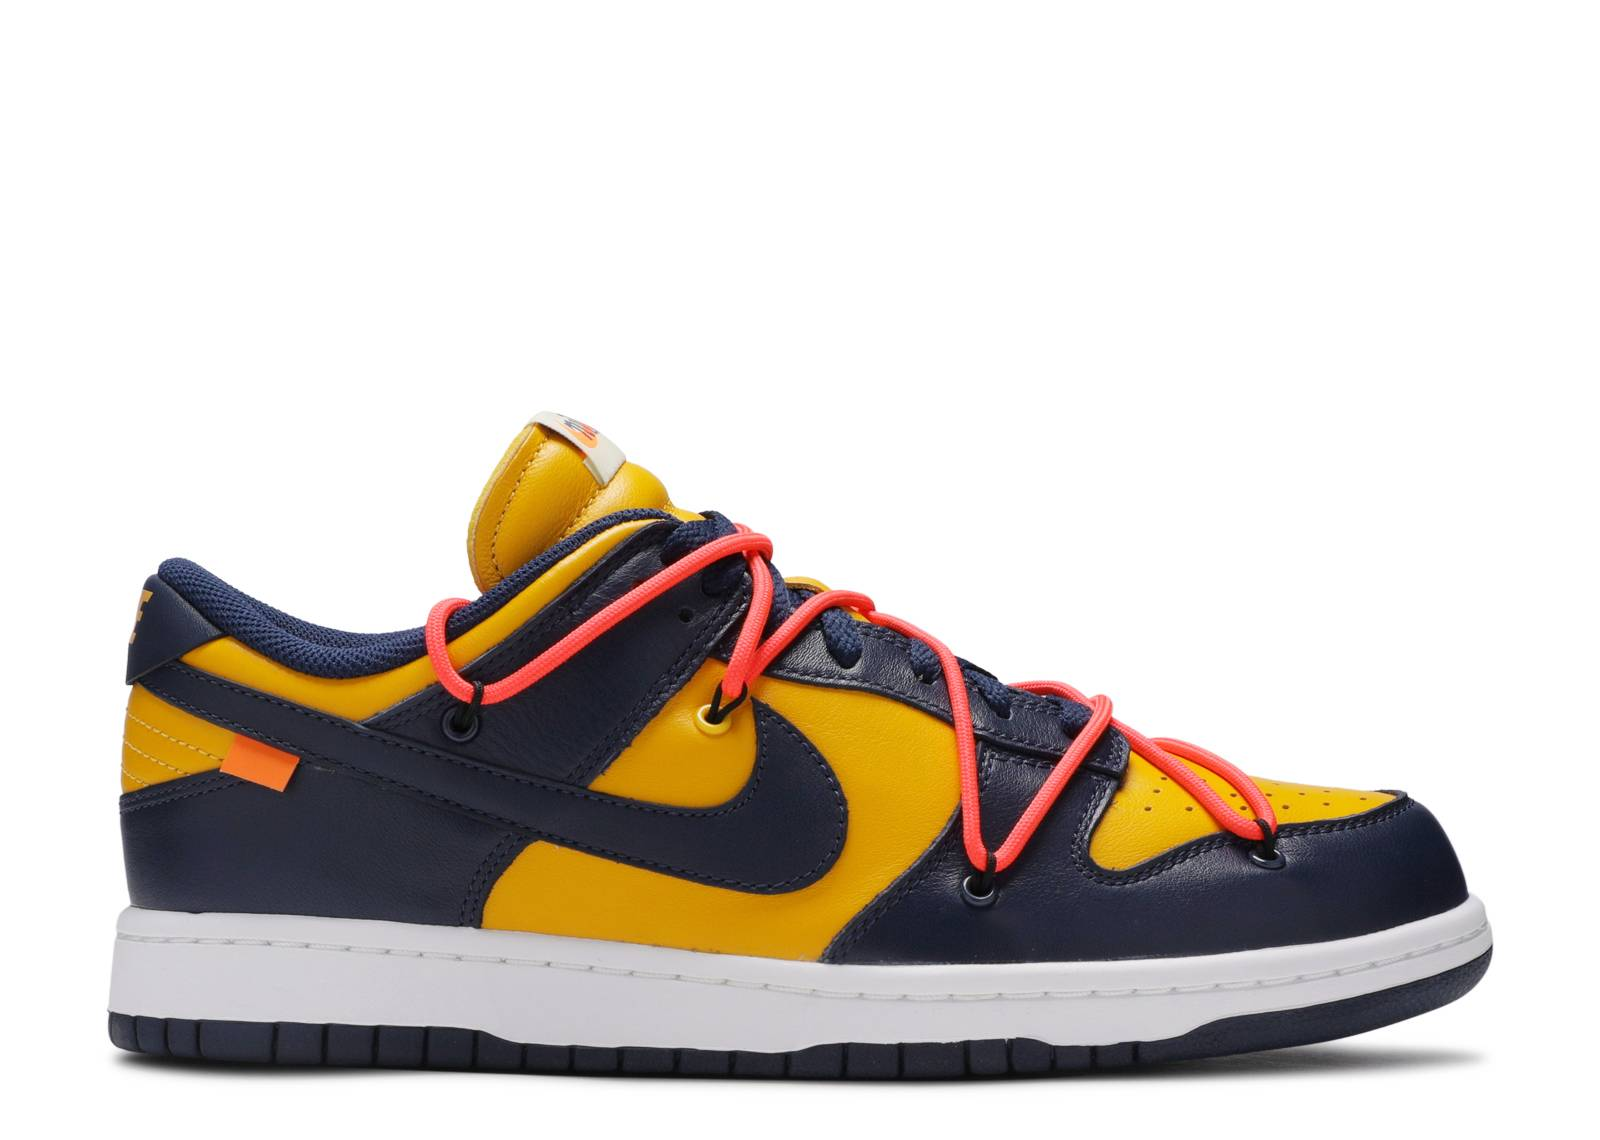 OFF-WHITE X DUNK LOW 'UNIVERSITY GOLD'